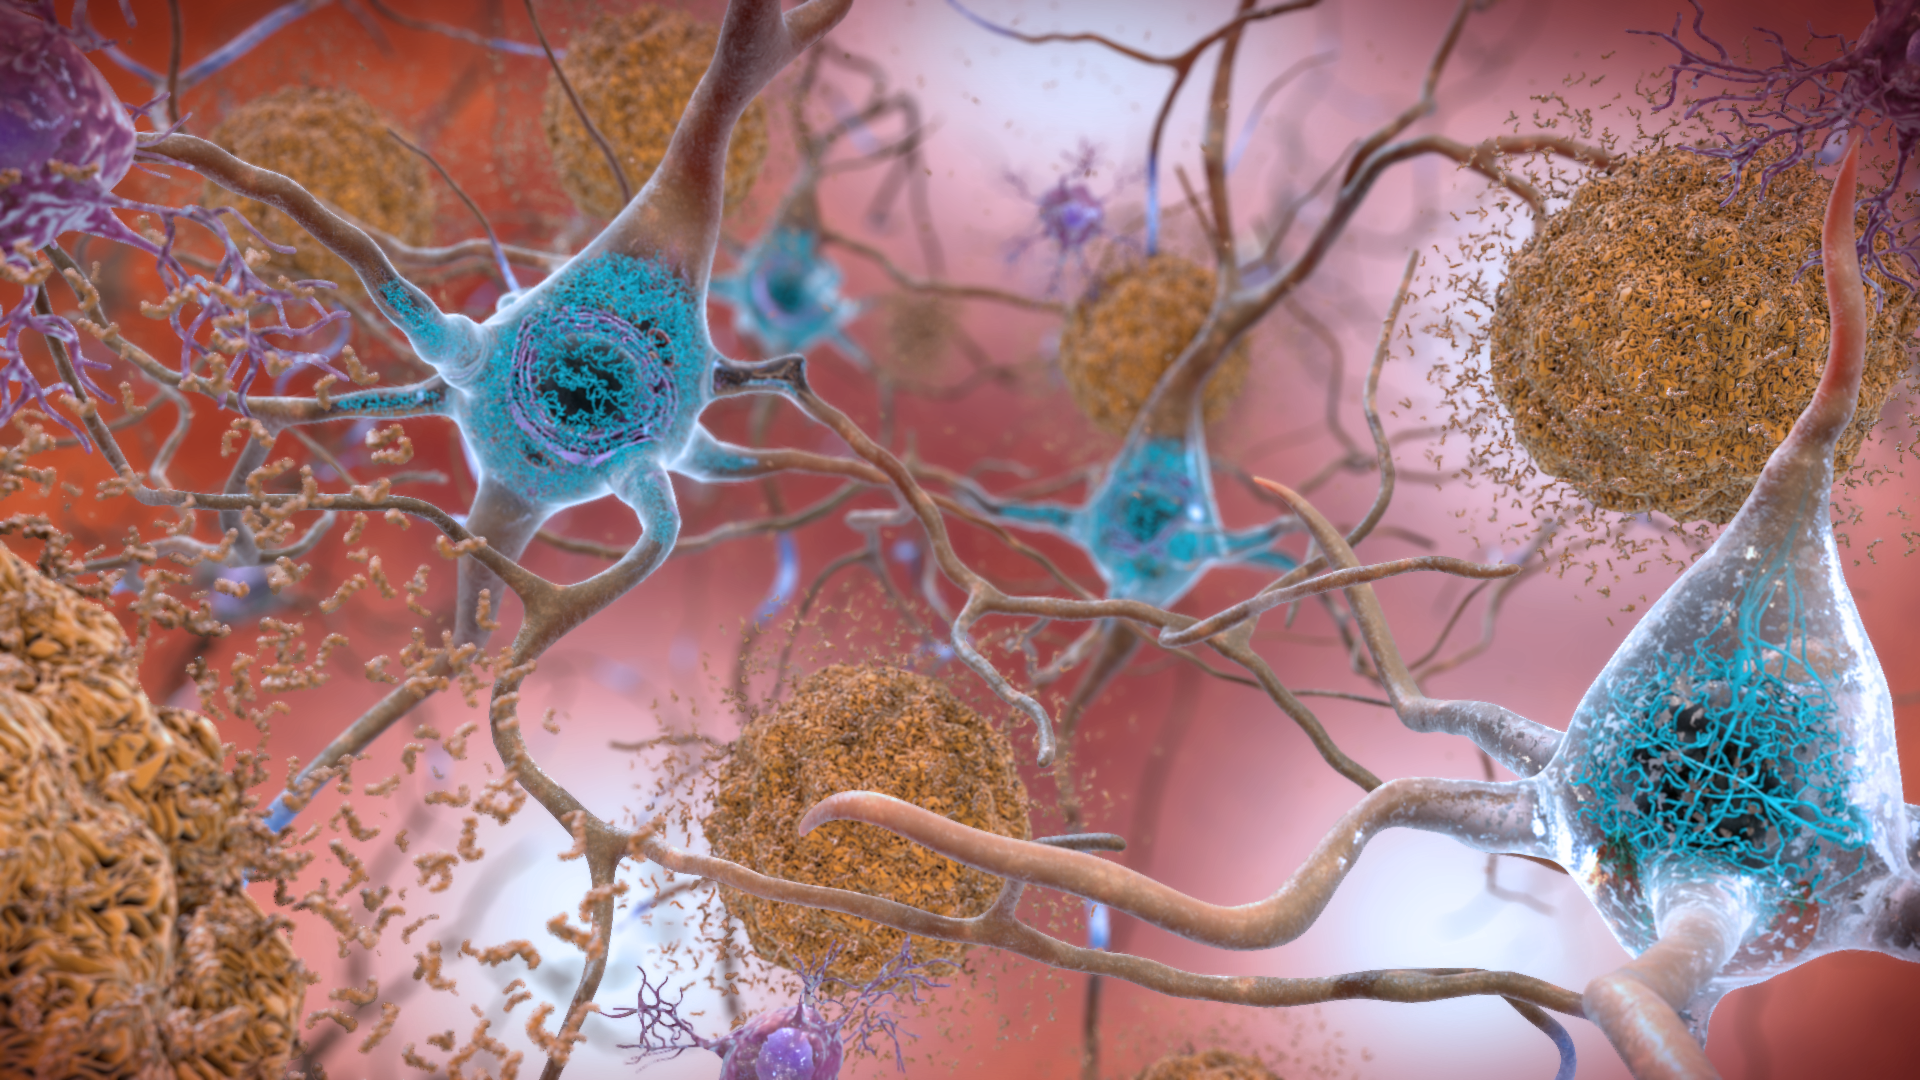 Cartoon of nerve cells (neurones) affected by Alzheimer's Disease with beta-amyloid plaques and neurofibrillary tangles